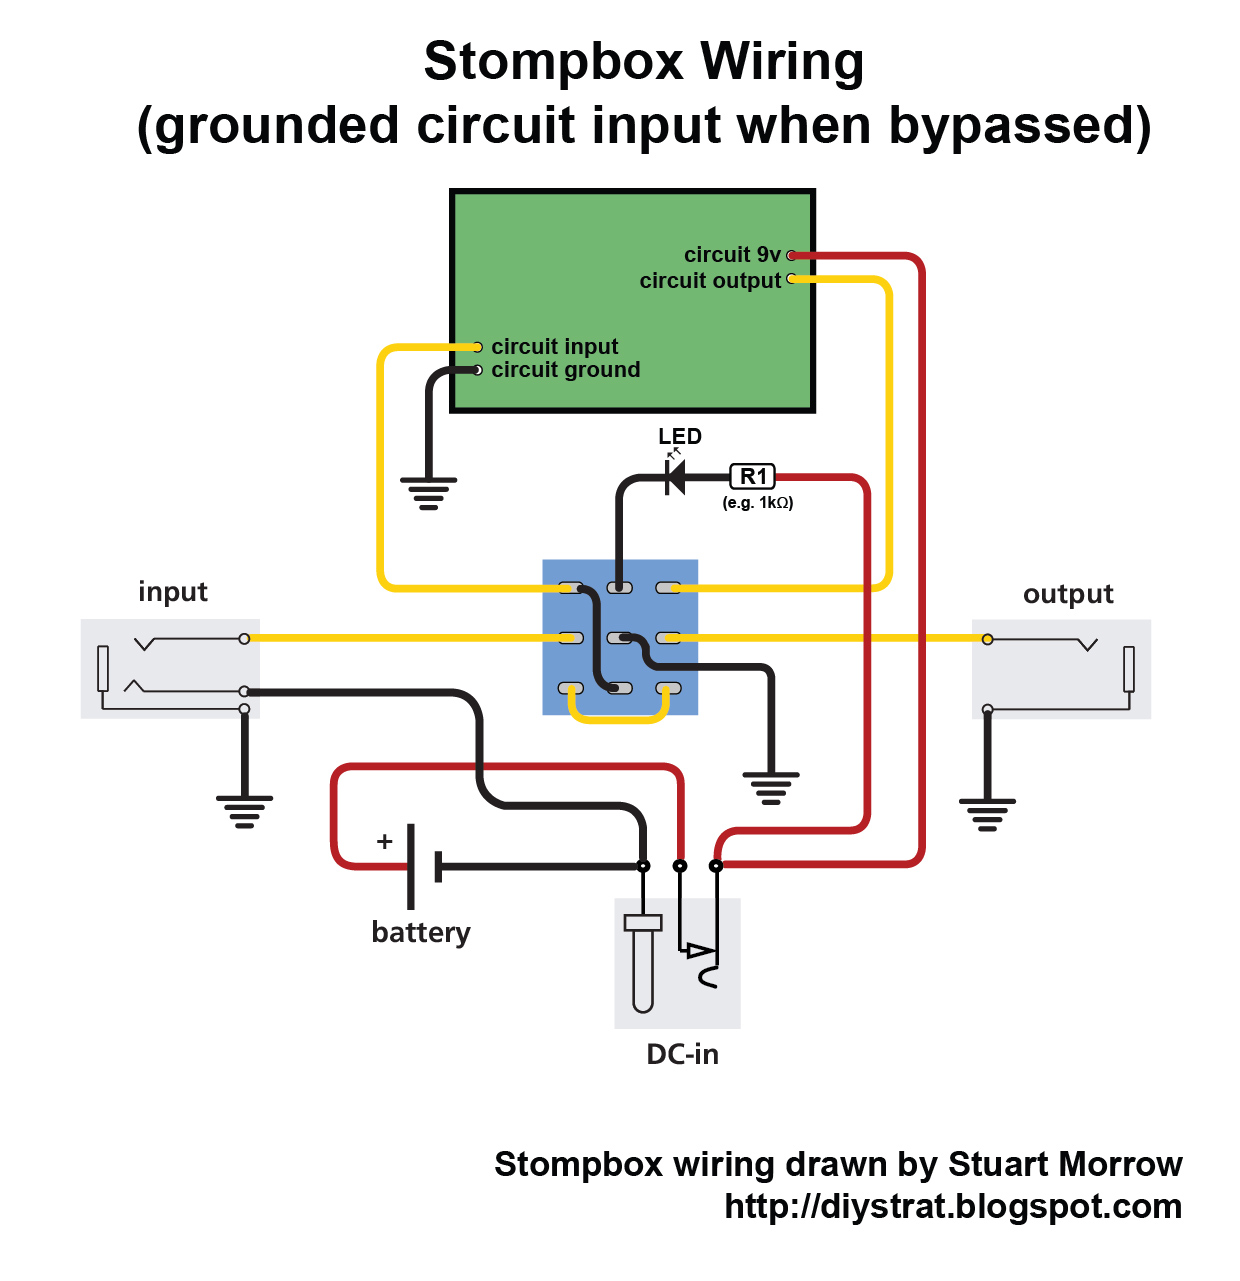 medium resolution of stomp box wiring harness wiring diagrams stomp box wiring harness wiring diagrams schema wiring harness diagram